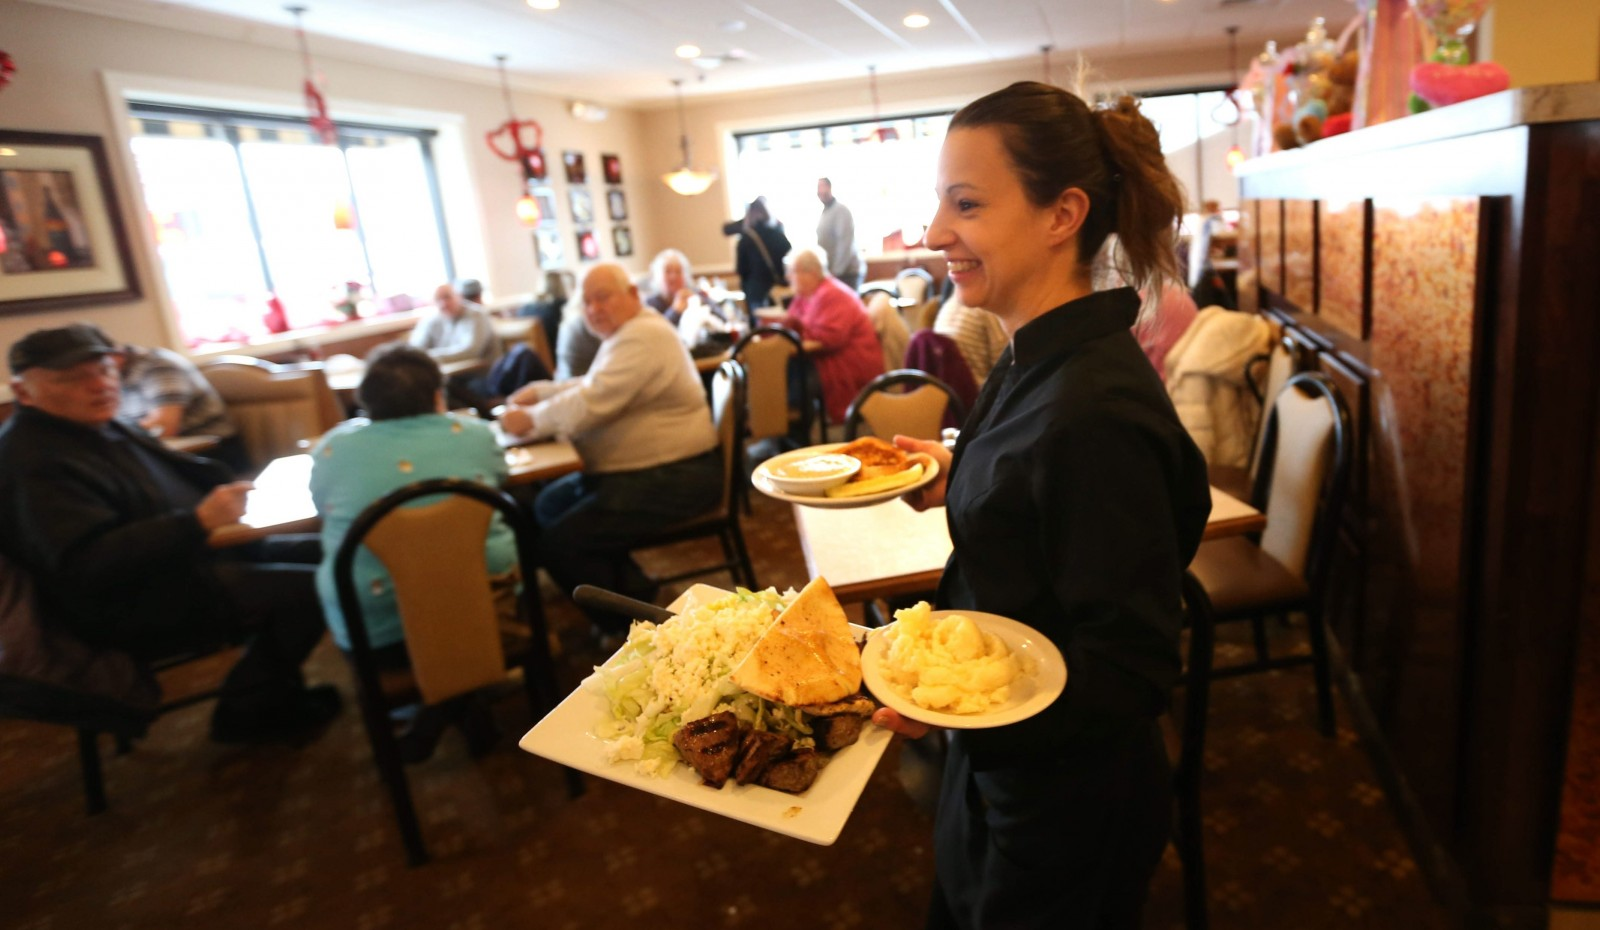 Apollo Family Restaurant is at 3387 South Park Ave. in Lackawanna. See a photo gallery at buffalonews.com.